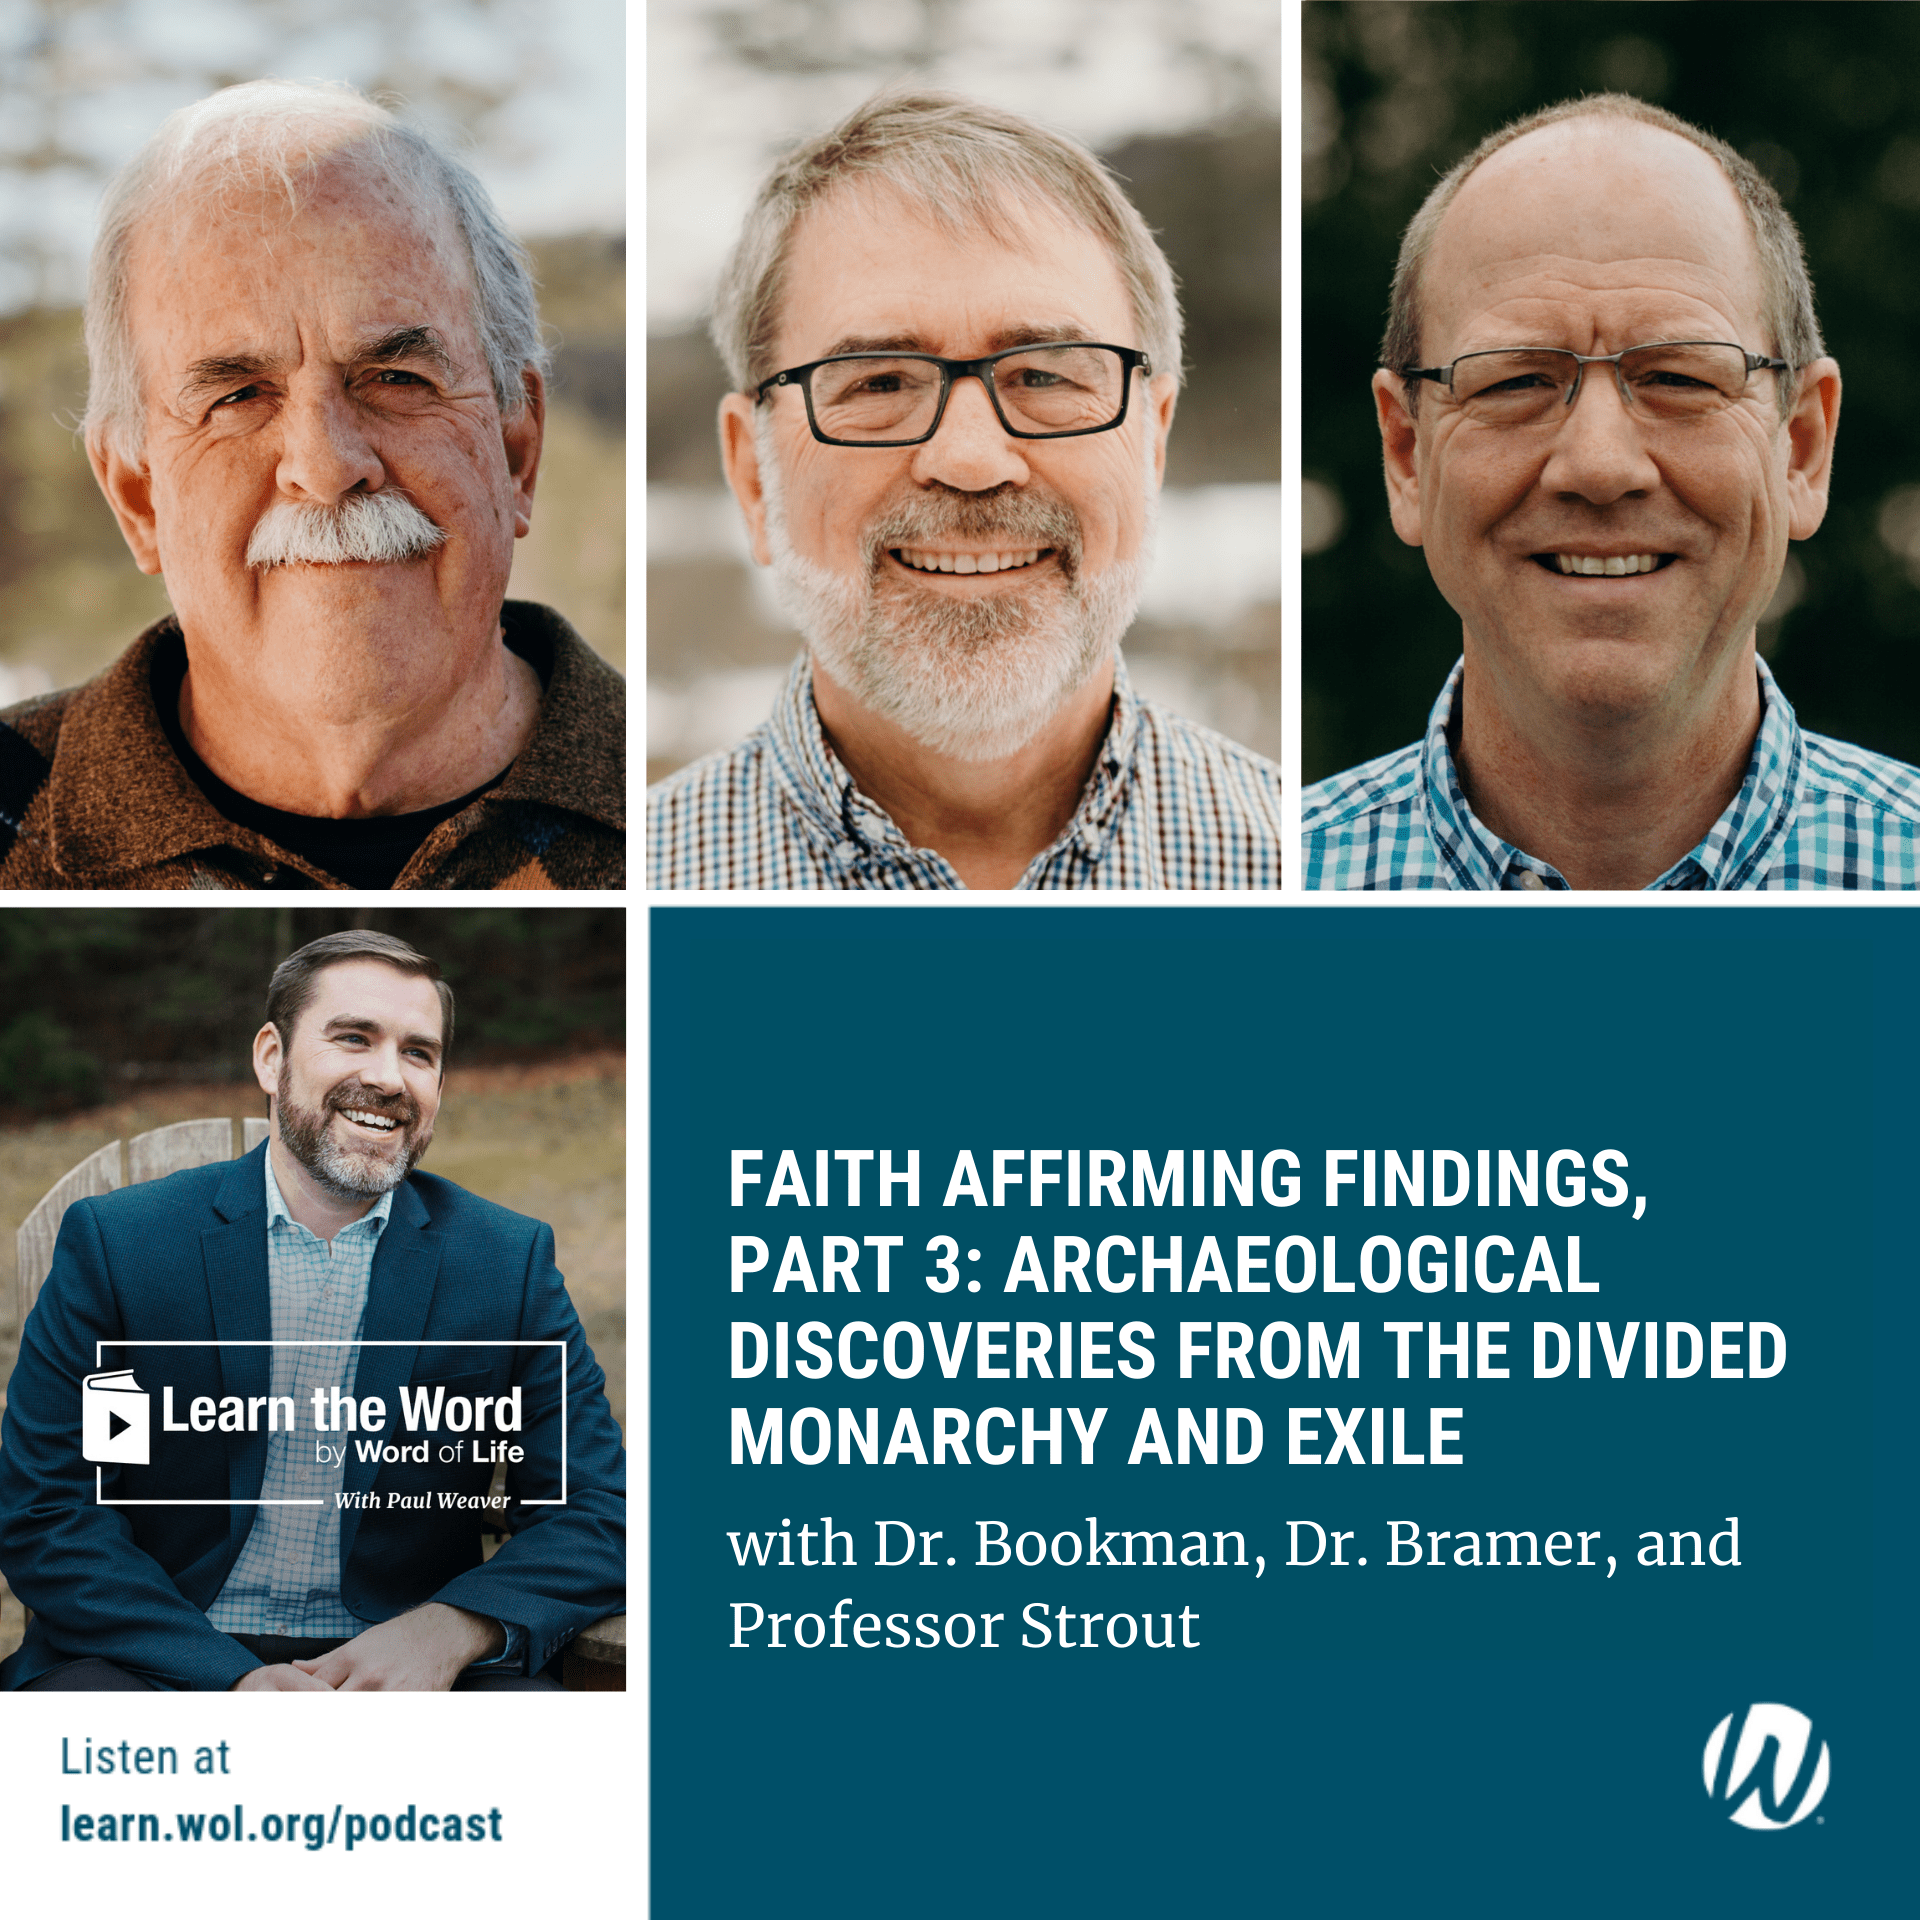 Faith Affirming Findings, Part 3_ Archaeological Discoveries from the Divided Monarchy and Exile - with Dr. Bookman, Dr. Bramer, and Professor Strout podcast cover